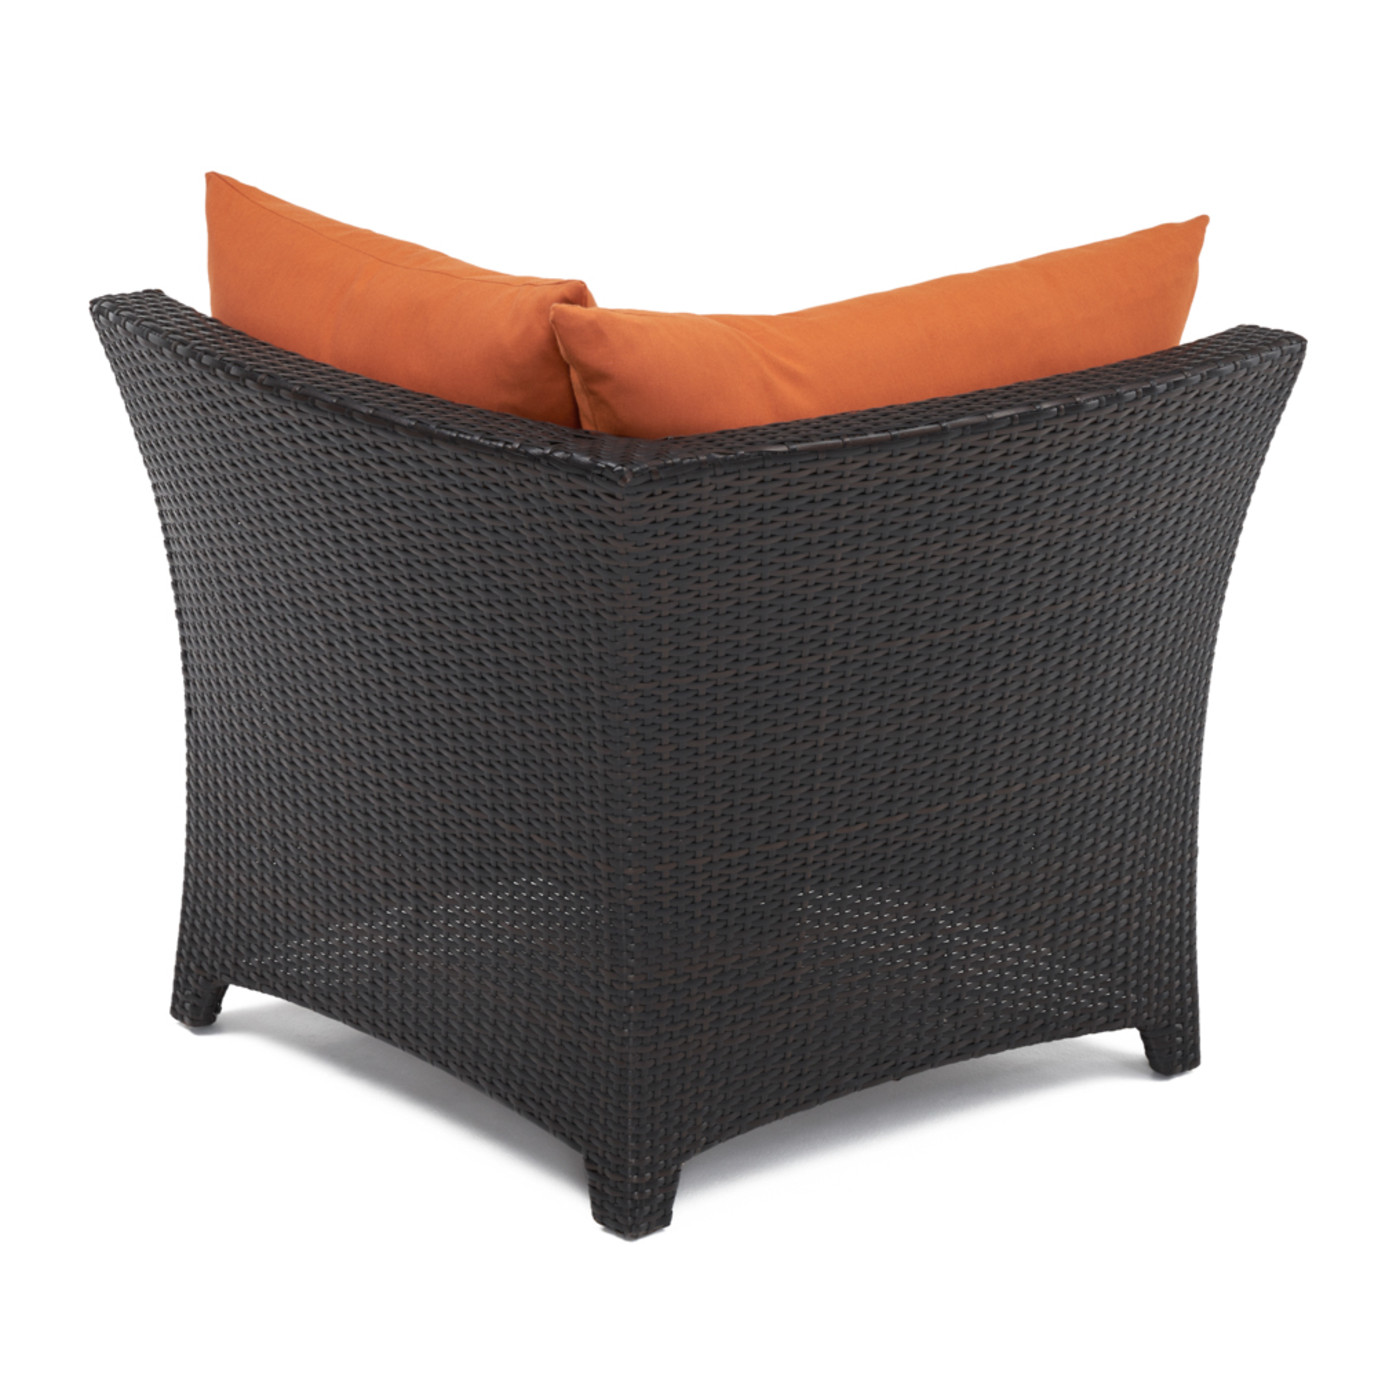 Deco™ 4pc Sectional and Table - Tikka Orange